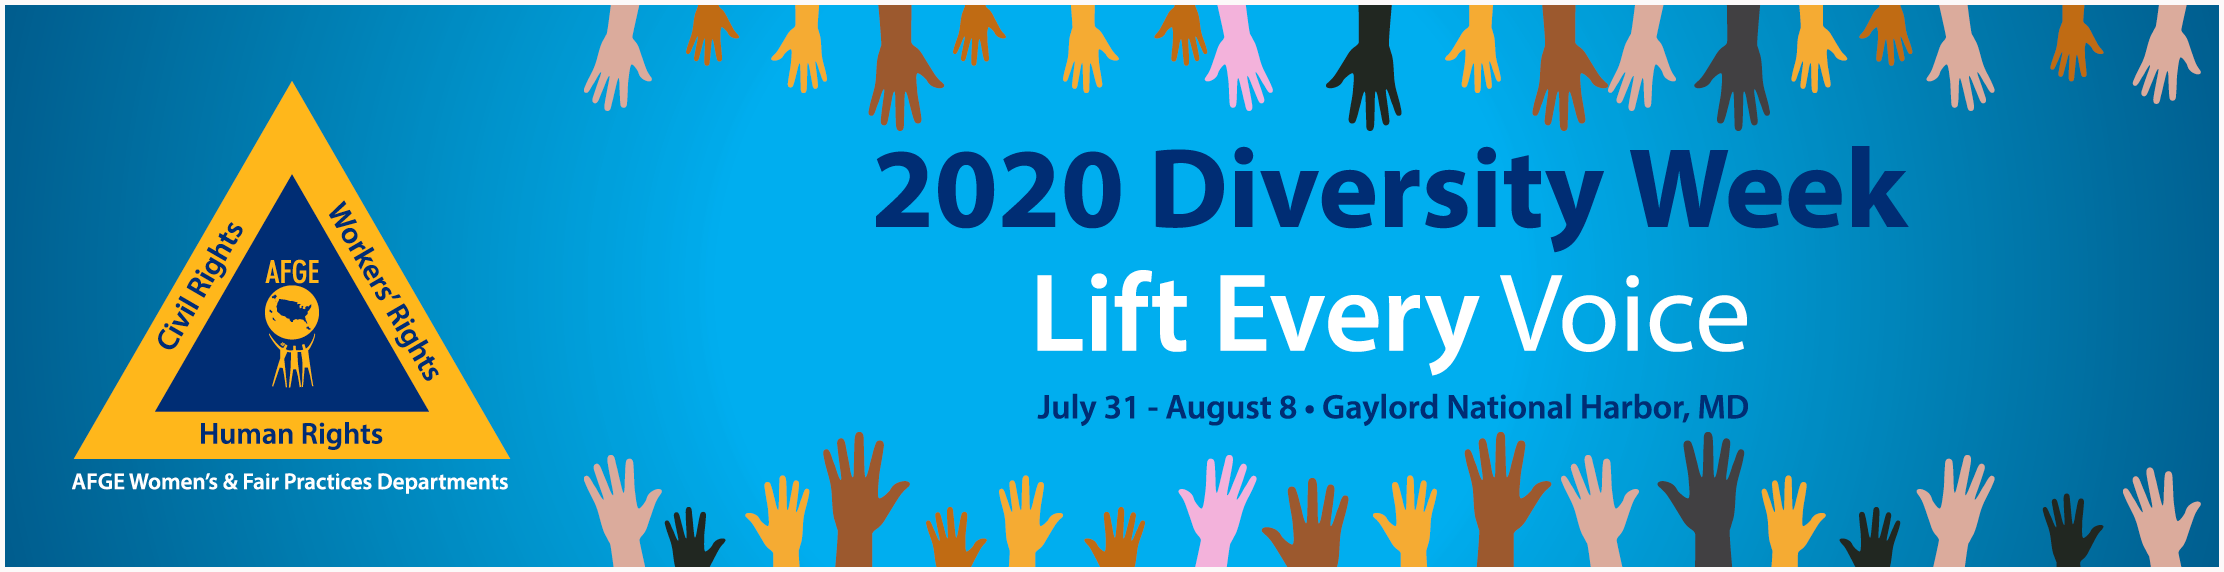 2020 Diversity Week Training